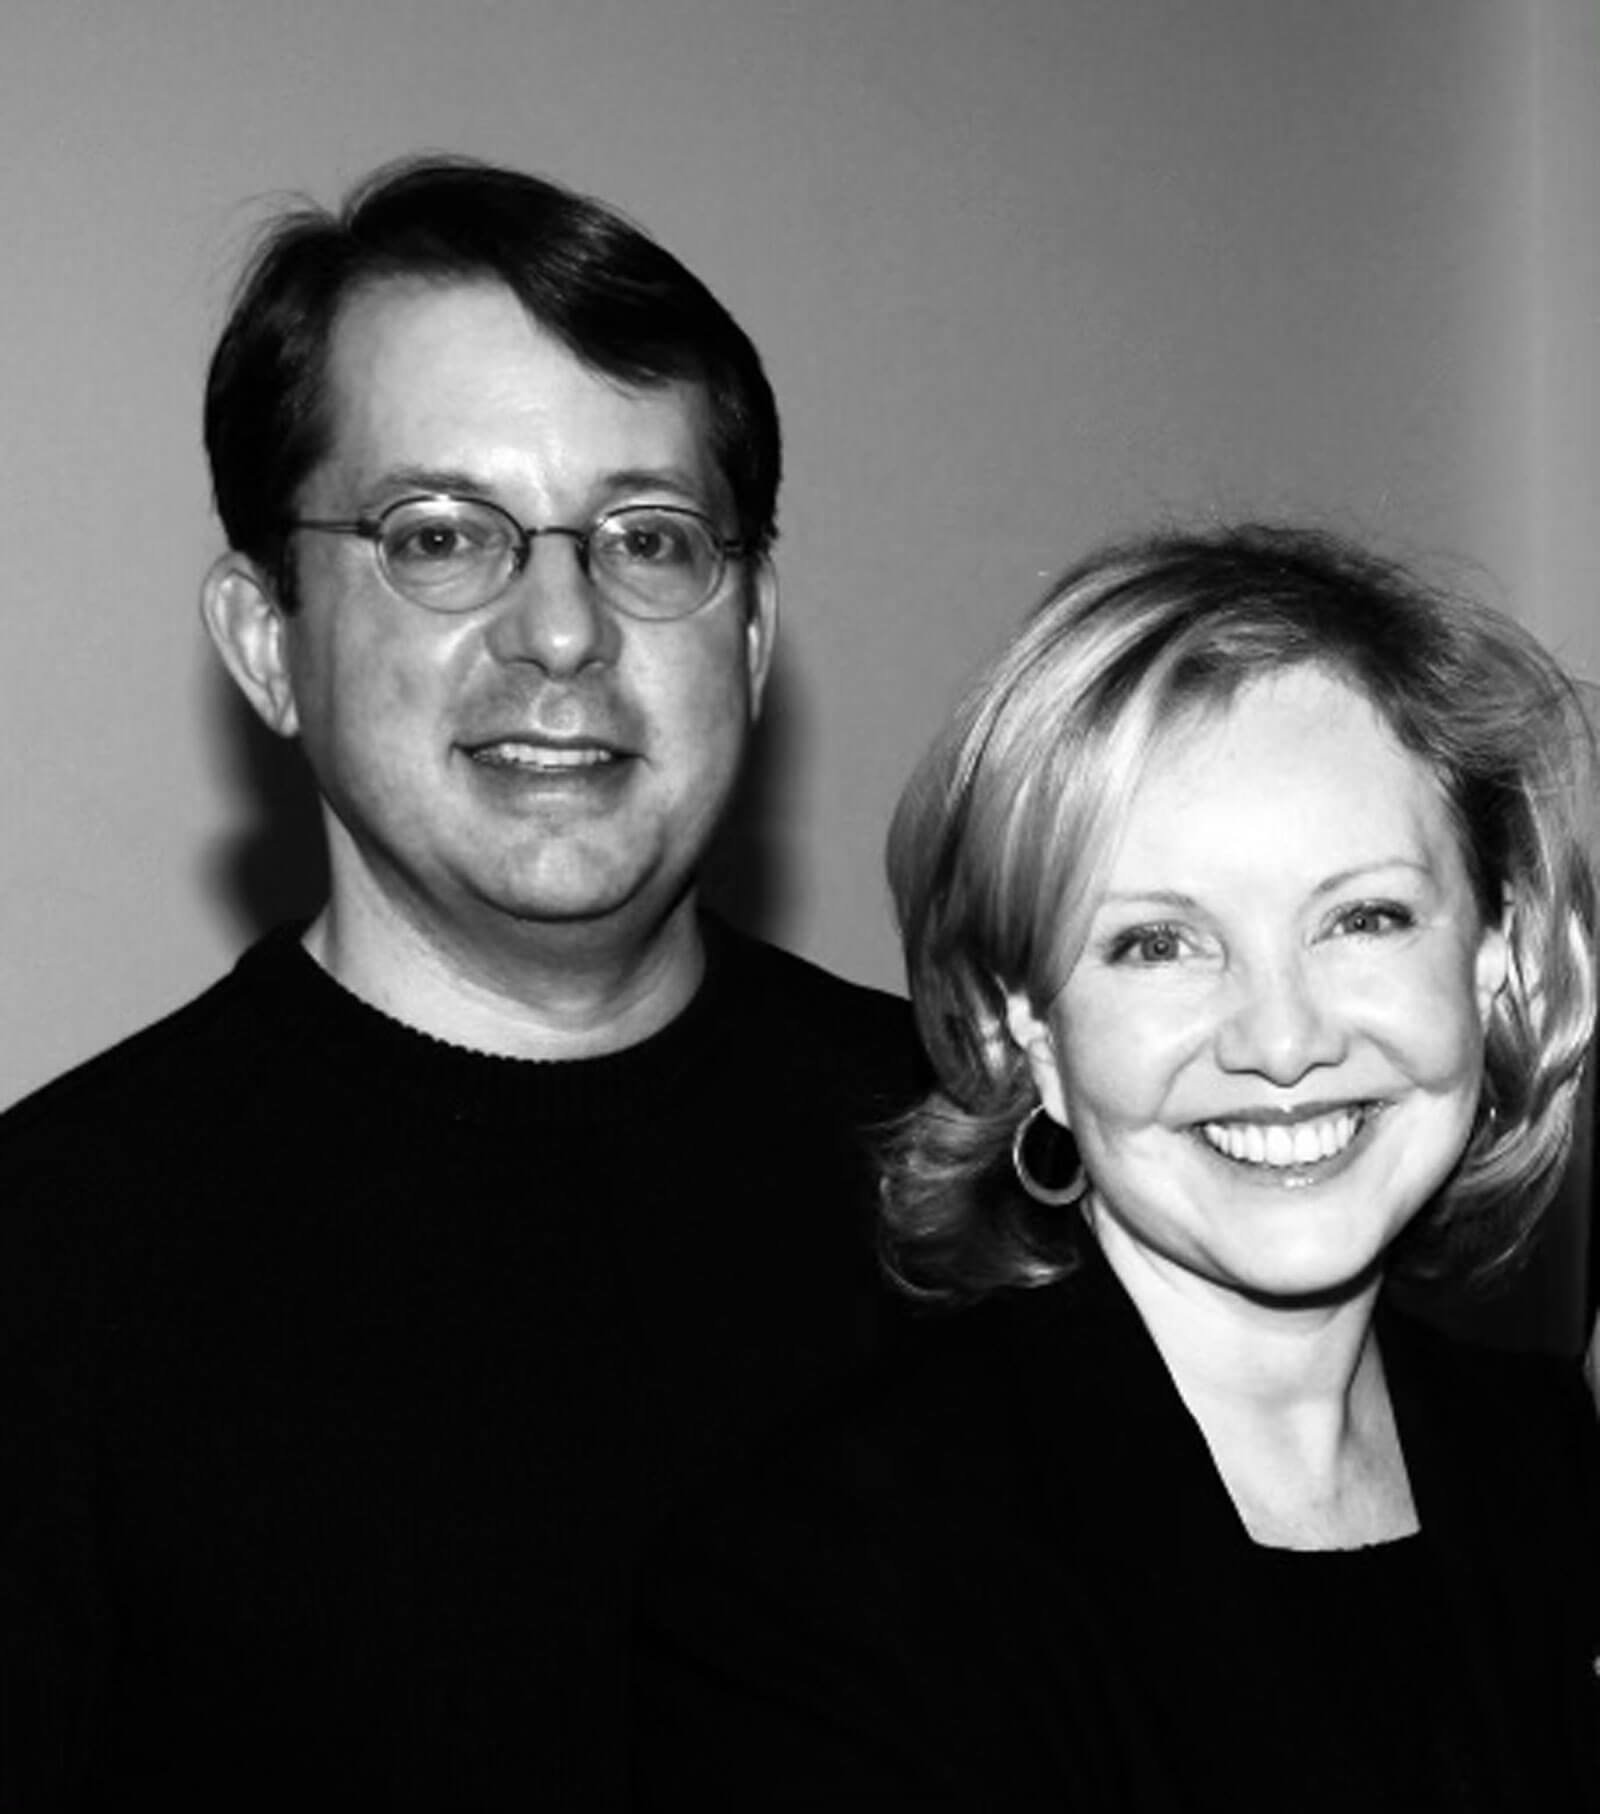 Black and white photo of David Loud and Susan Stroman. Both dressed in black.